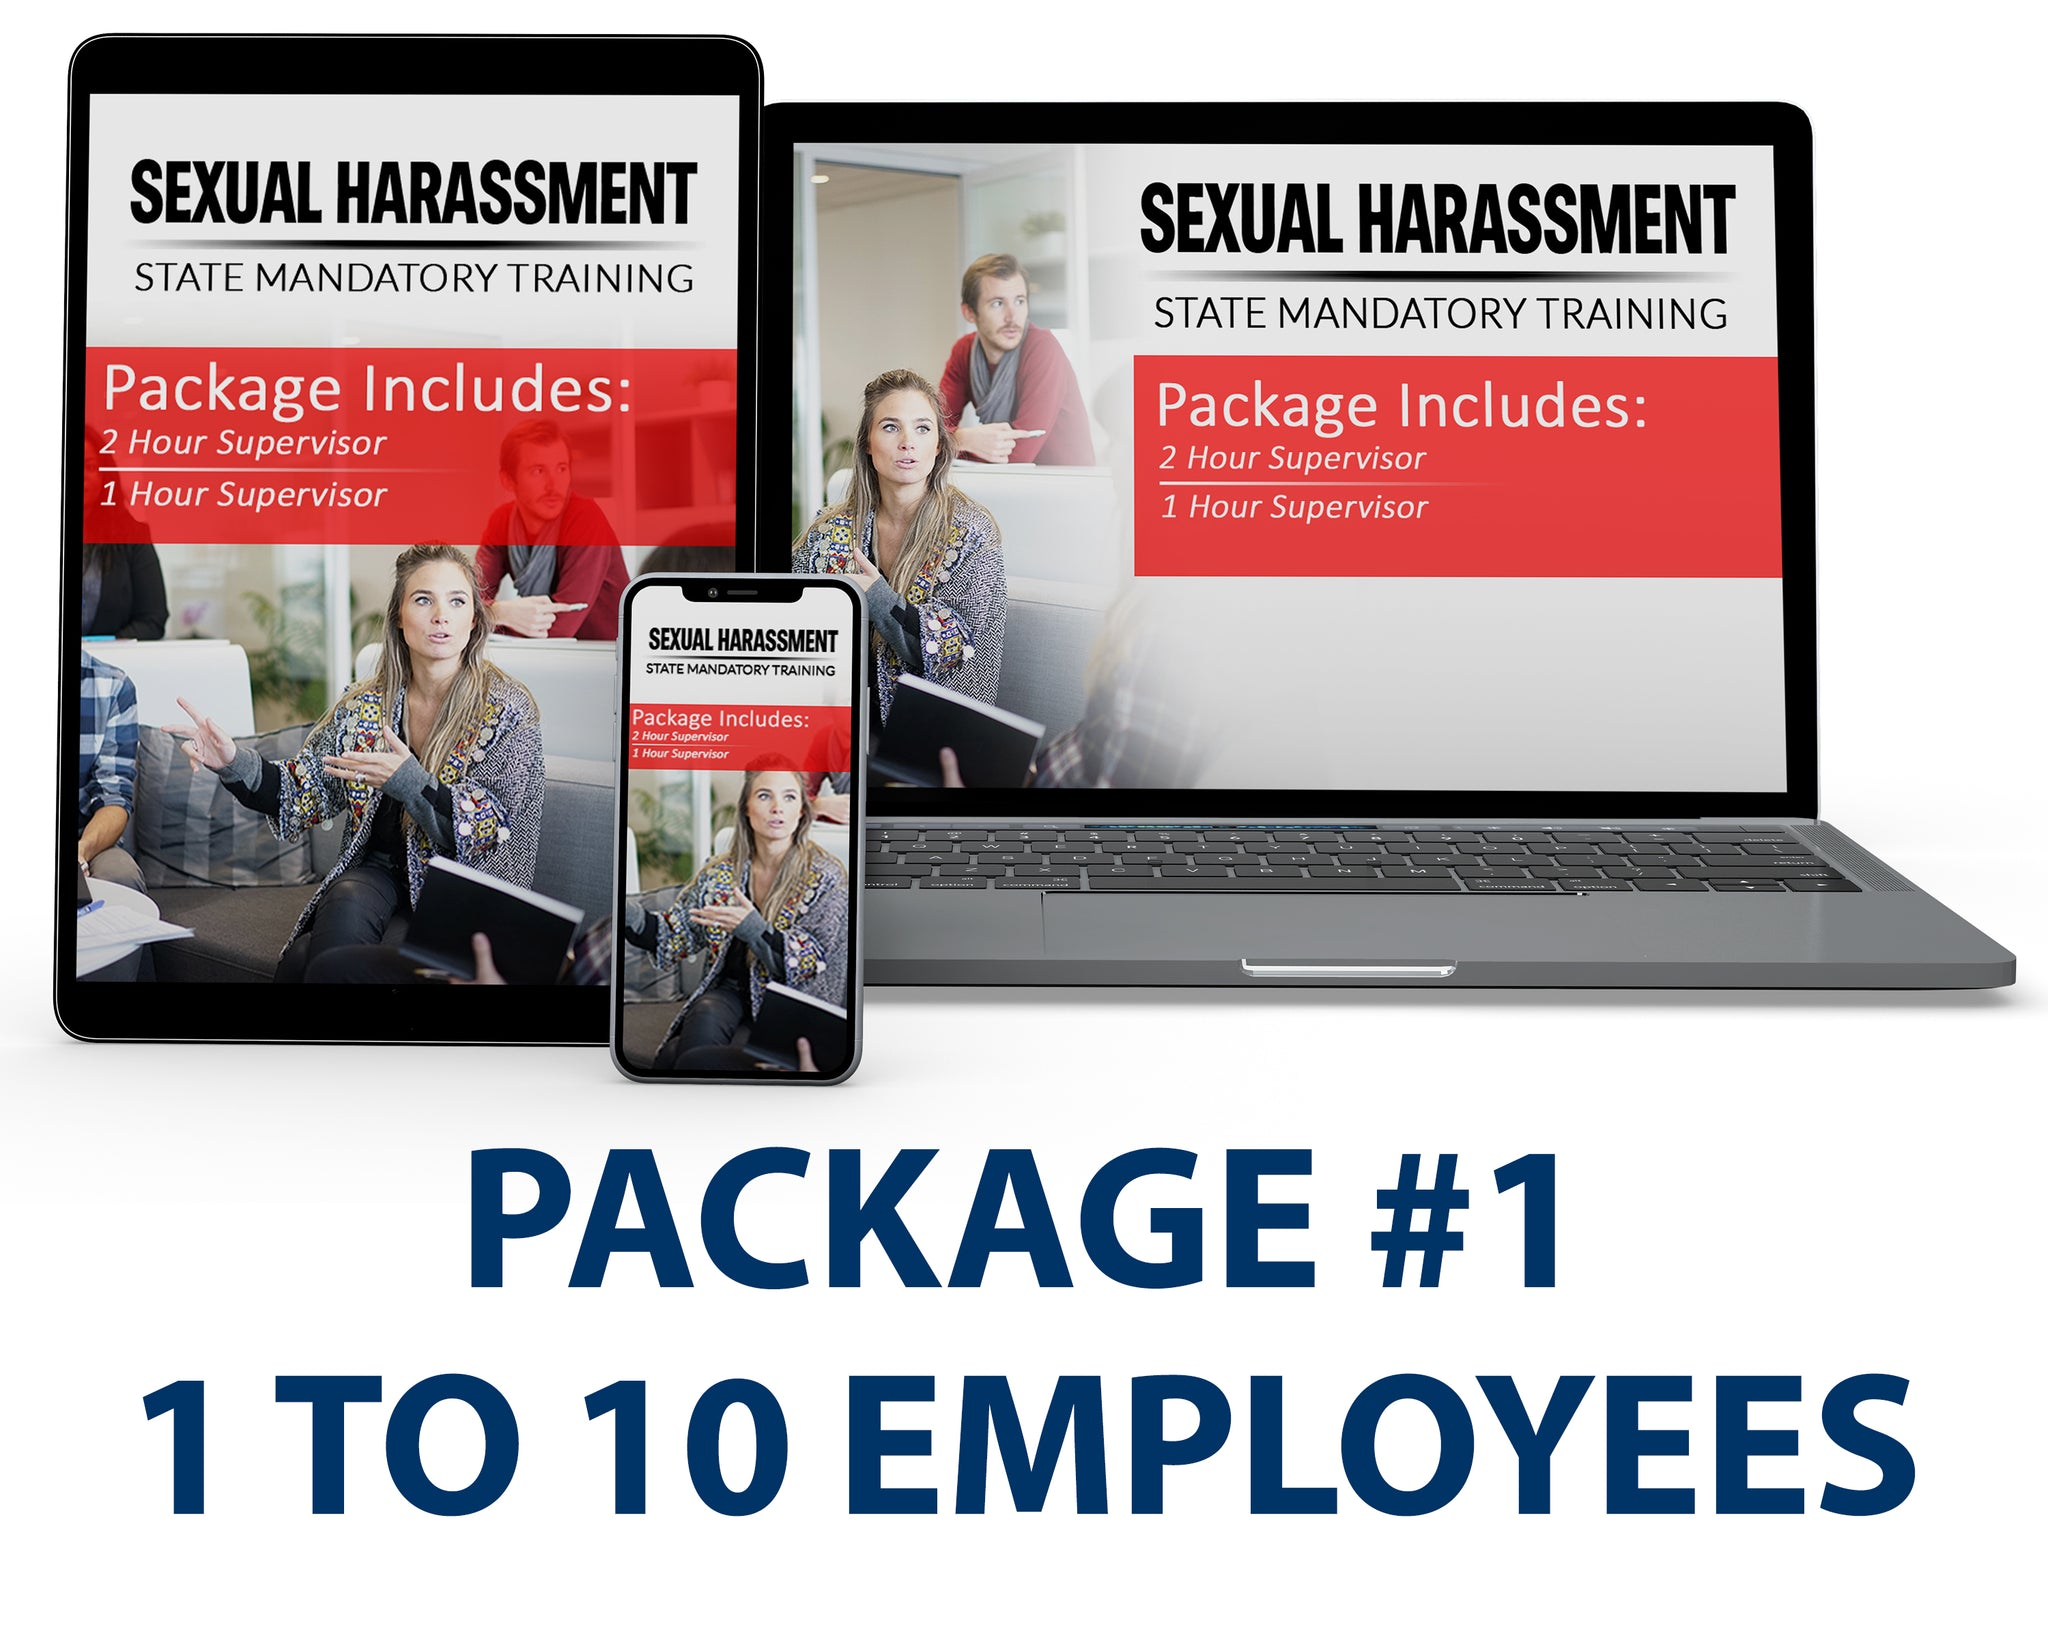 Wilson Elser IL Harassment Package #1 (1-10 Employees)